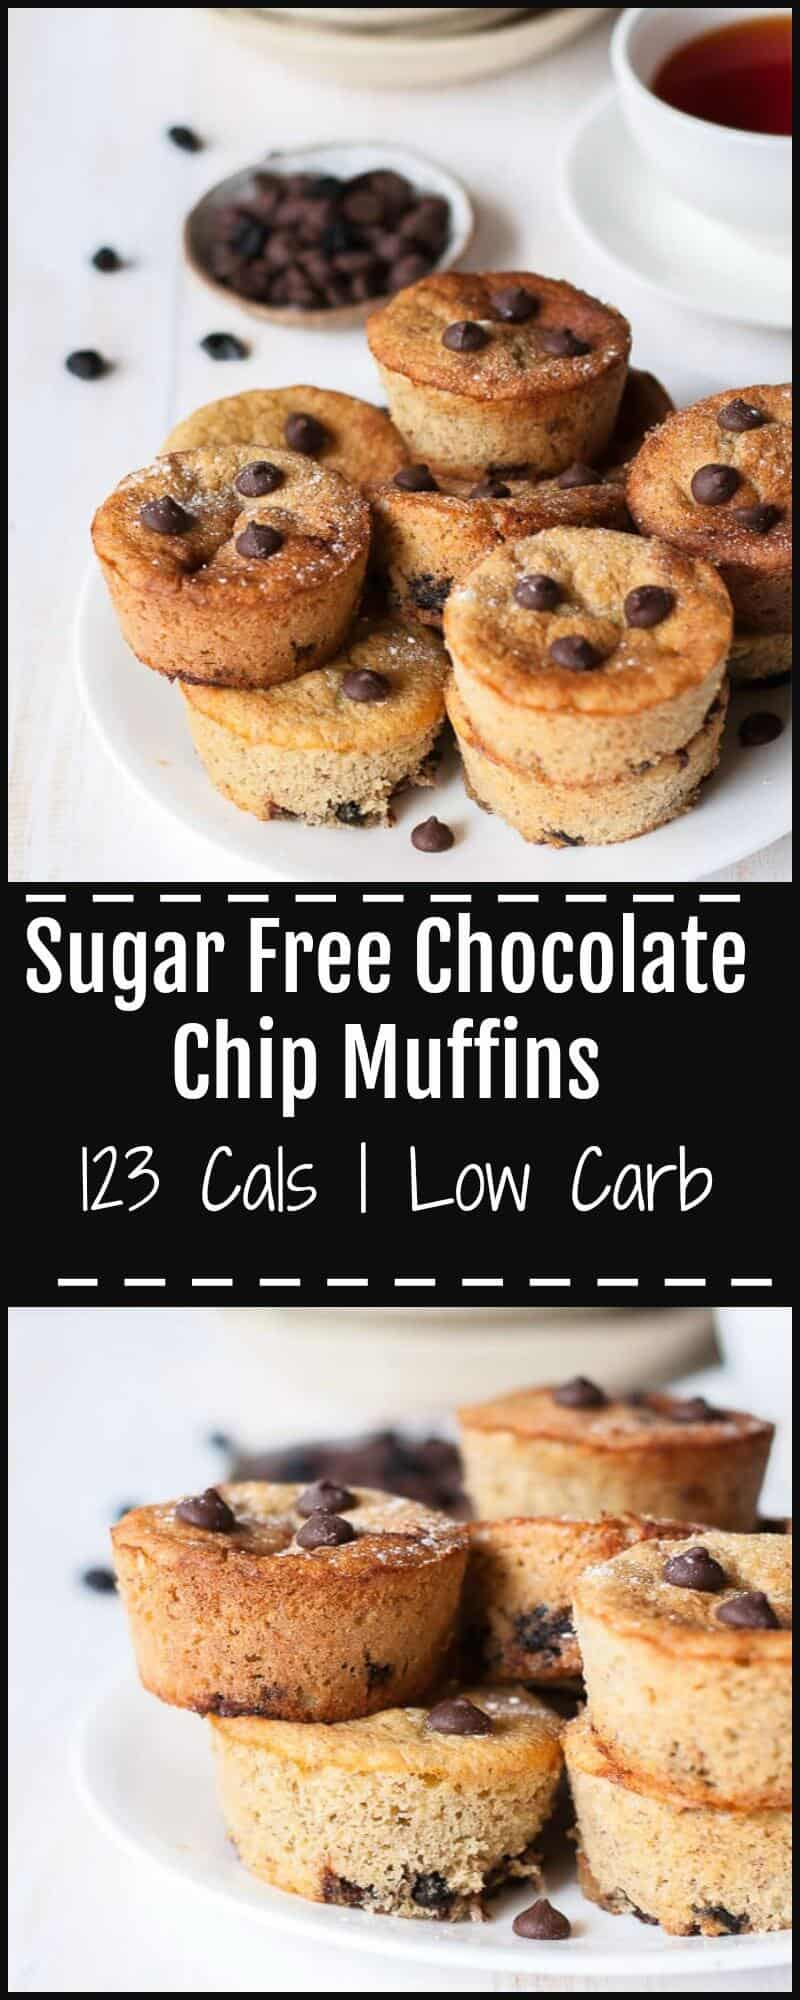 These sugar free chocolate chip muffins are an easy and guilt free alternative to store bought sugary snacks. They are quick to make and perfect as a snack on the go or for school and work lunchboxes.